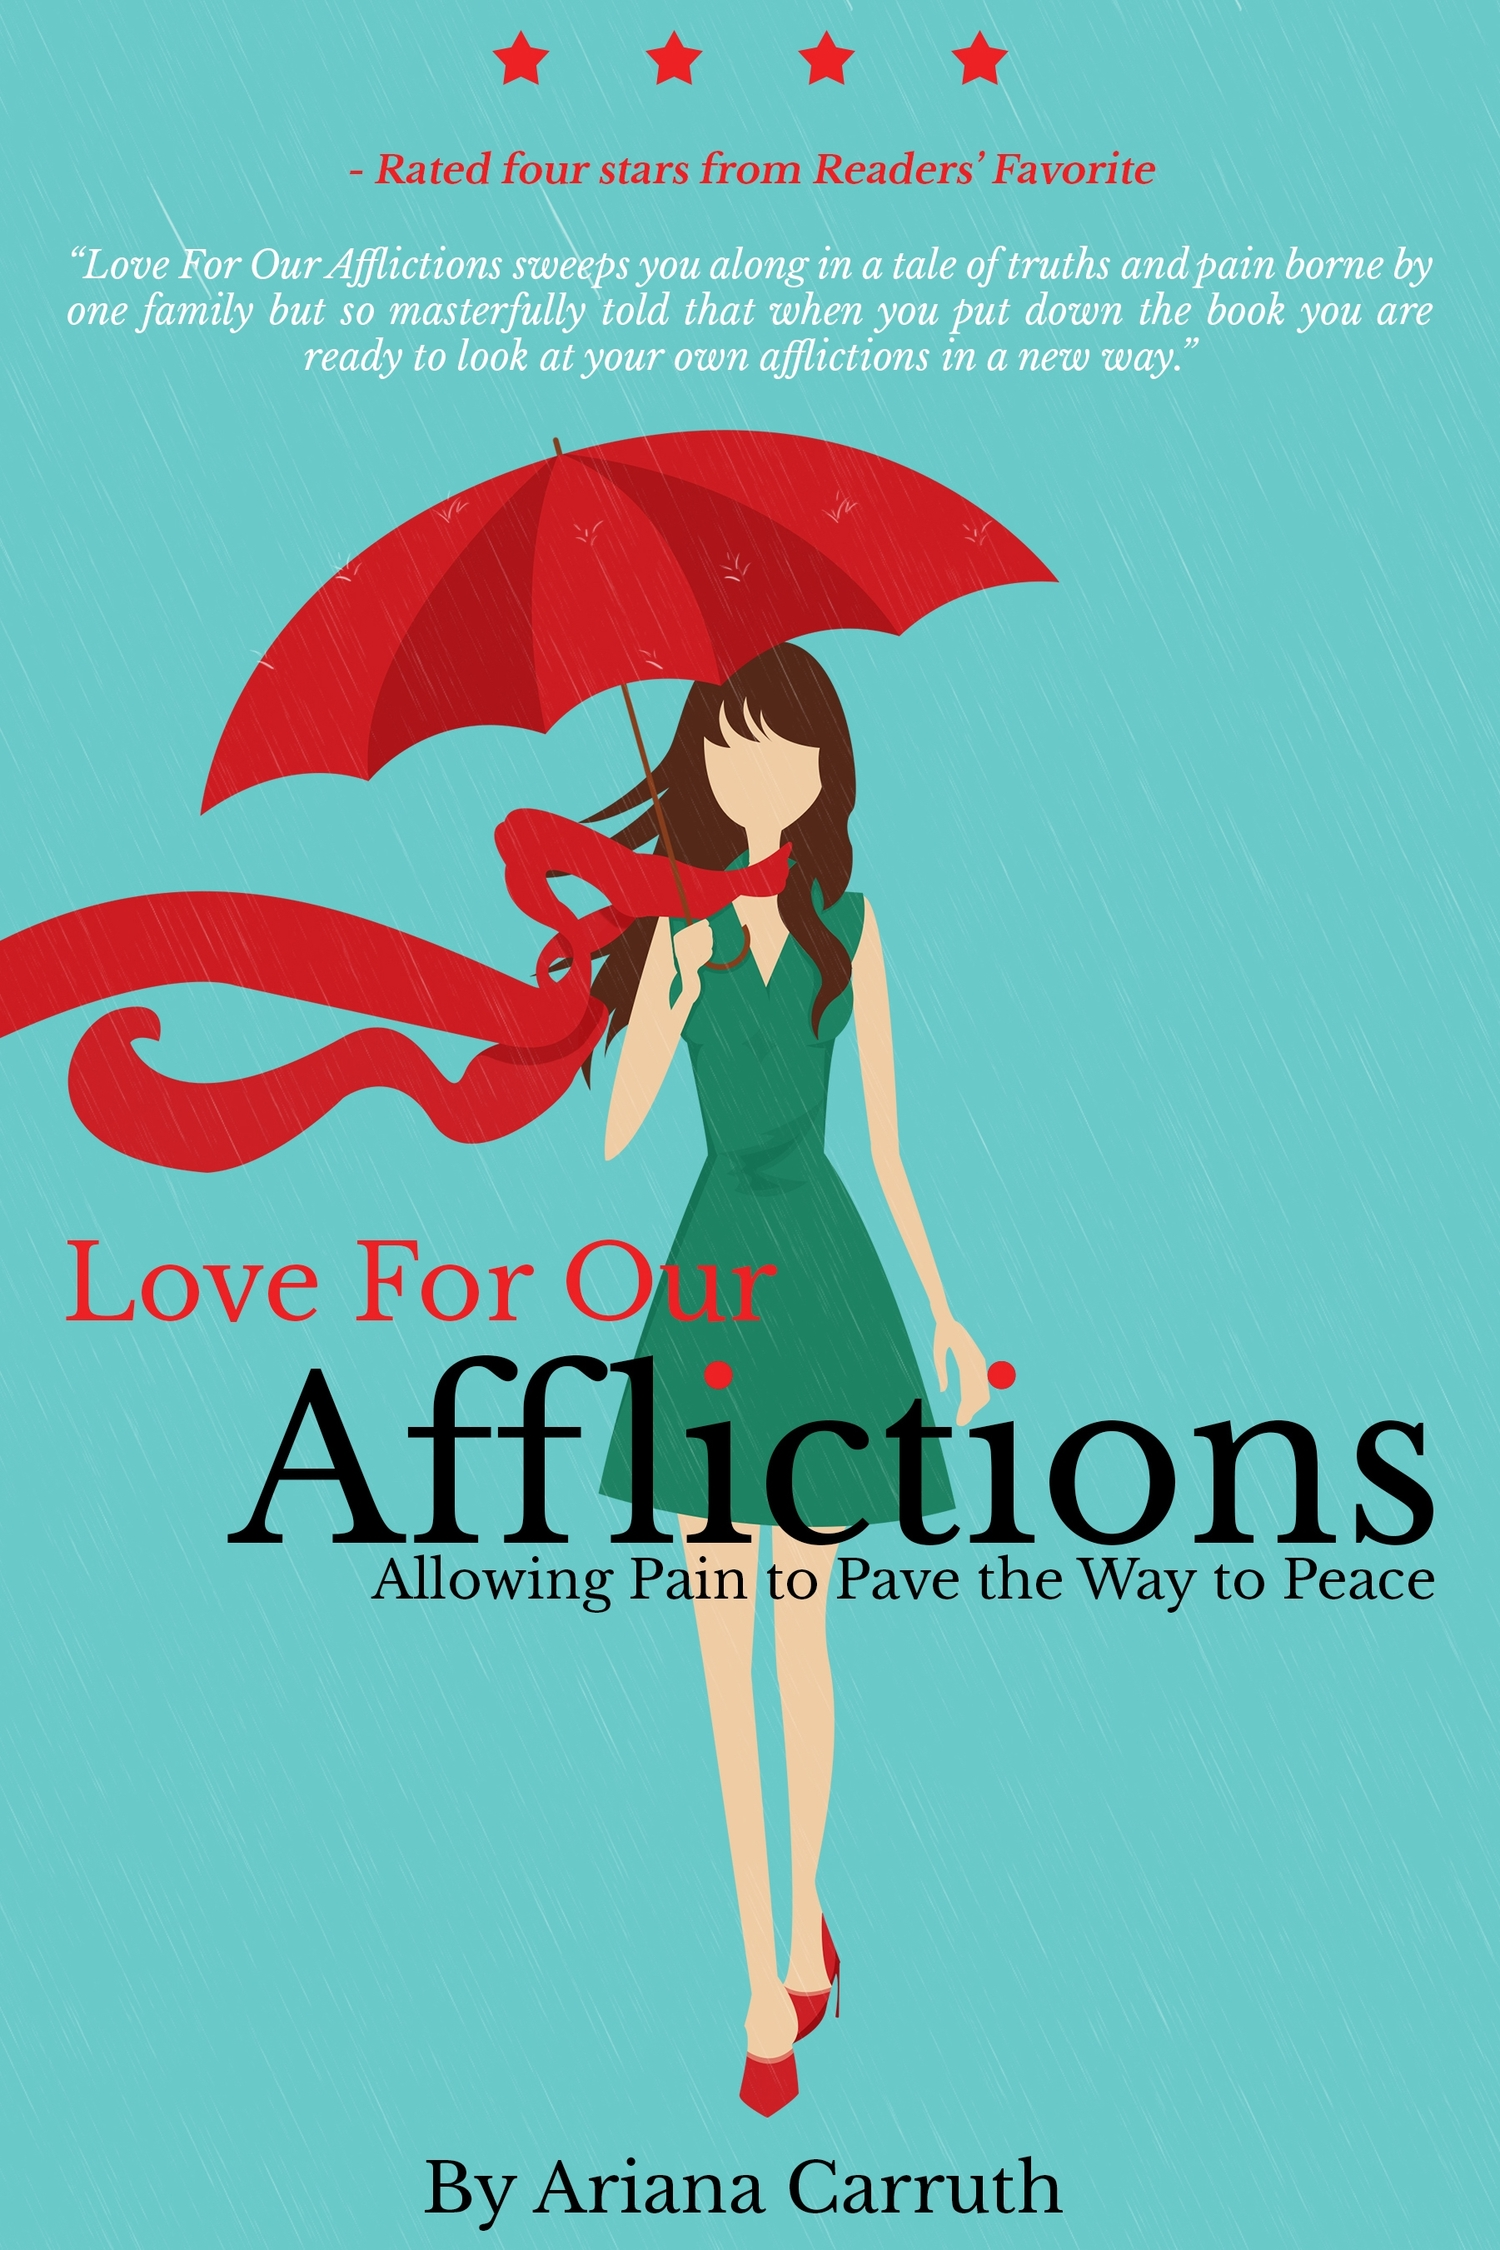 Love For Our Afflictions